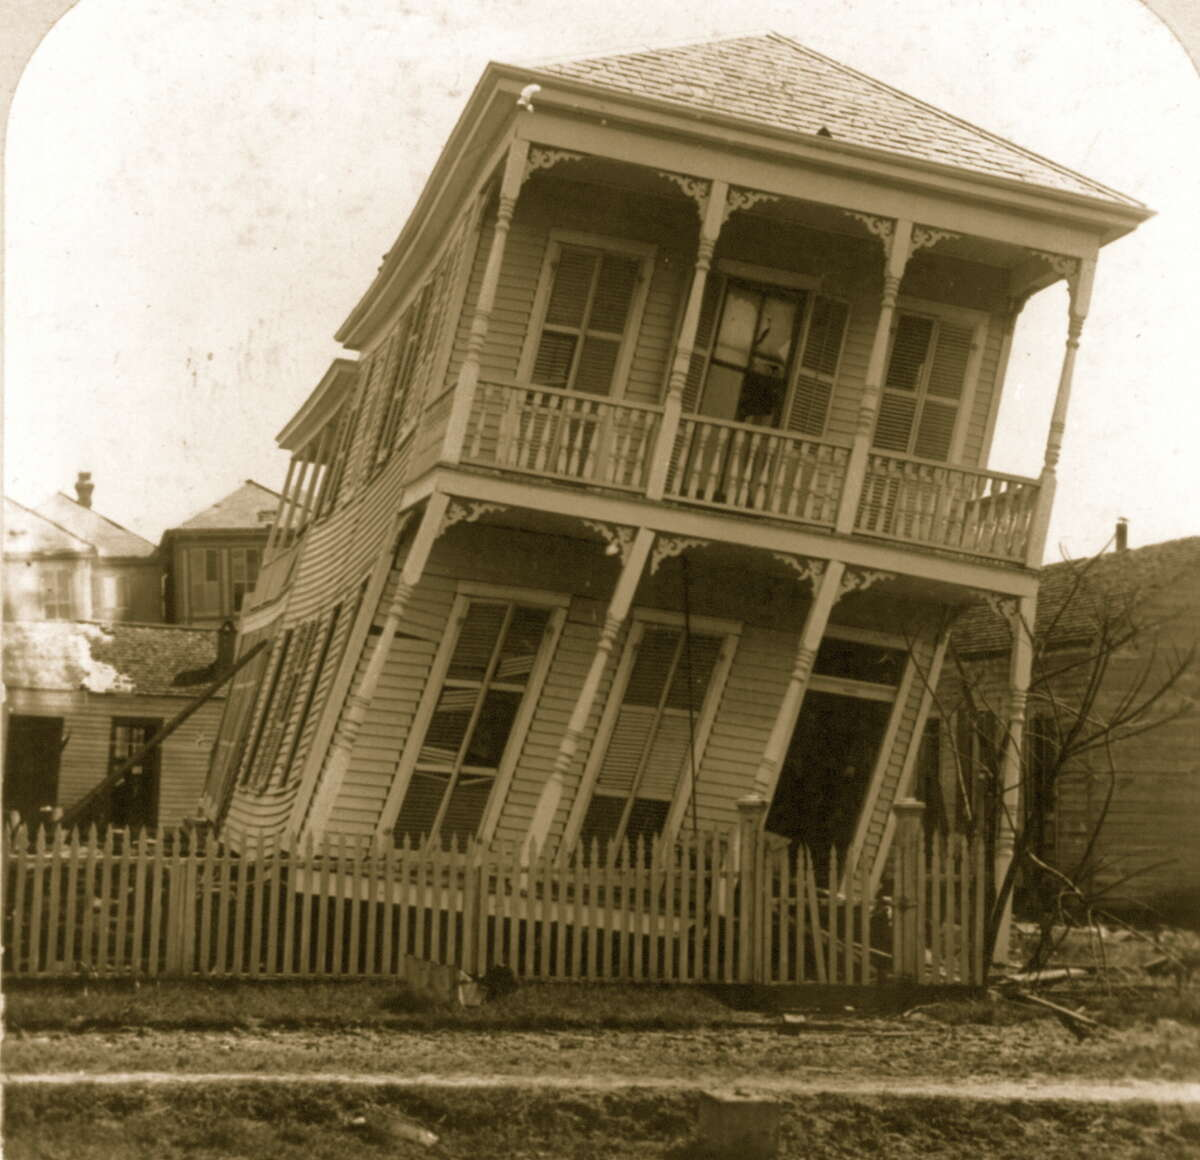 The Hurricane of 1900 made landfall on the city of Galveston, Texas on September 8, 1900. It had estimated winds of 135 mph (215 km/h) at landfall, making it a Category 4 storm.